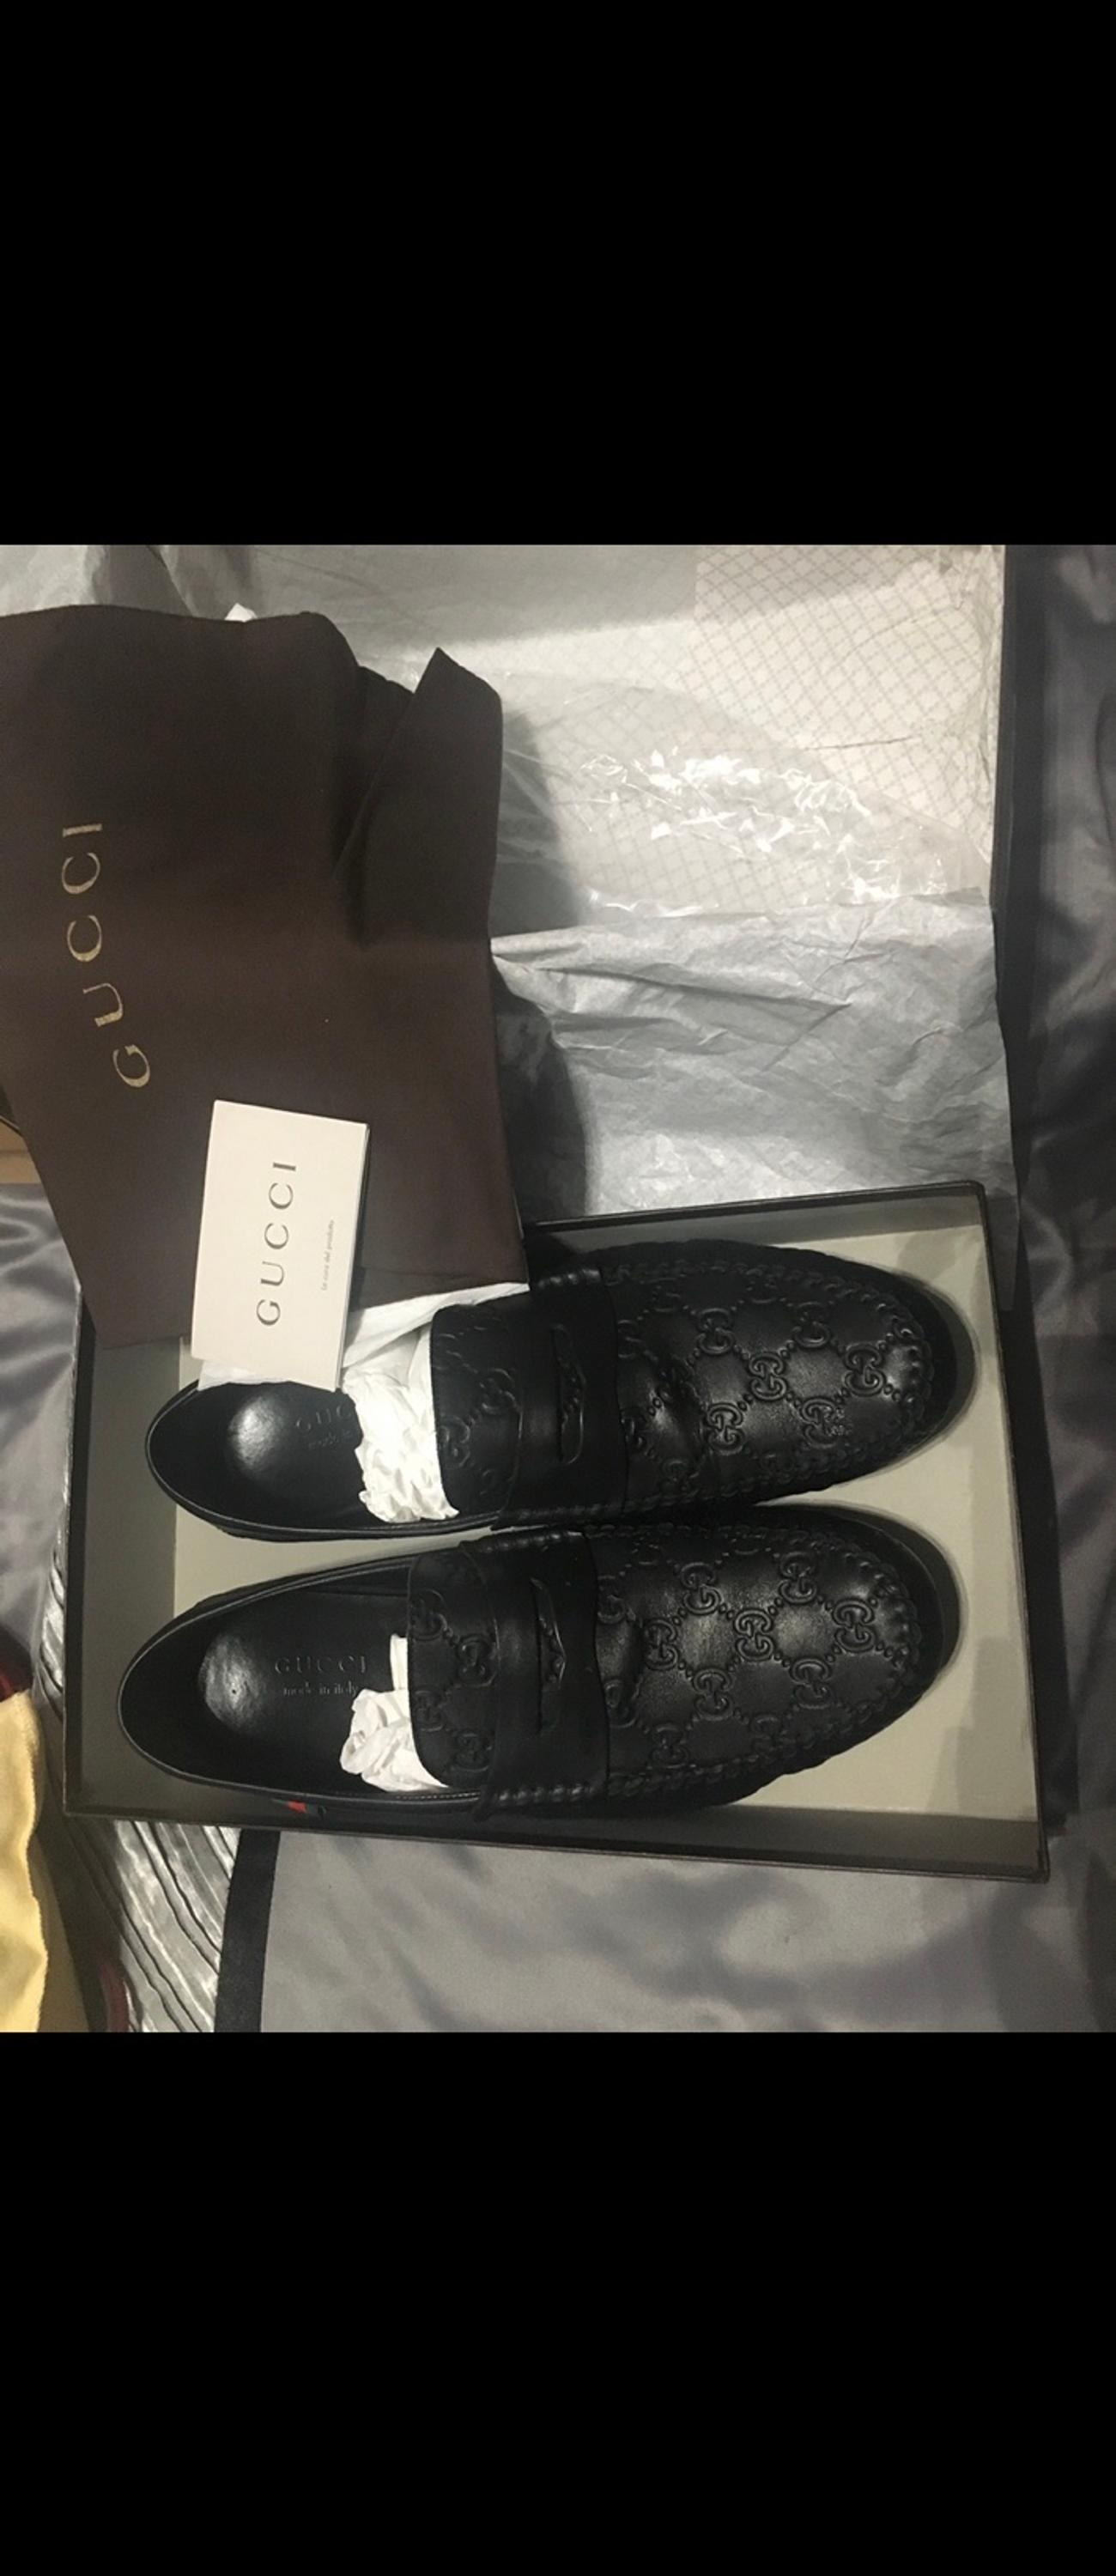 Hardly worn - in great condition mens black leather Gucci Loafers. A lovely classic design - great gift. Comes with packaging. All in good condition. Mens SIZE 9. Purchased for £300 from Selfridges LONDON